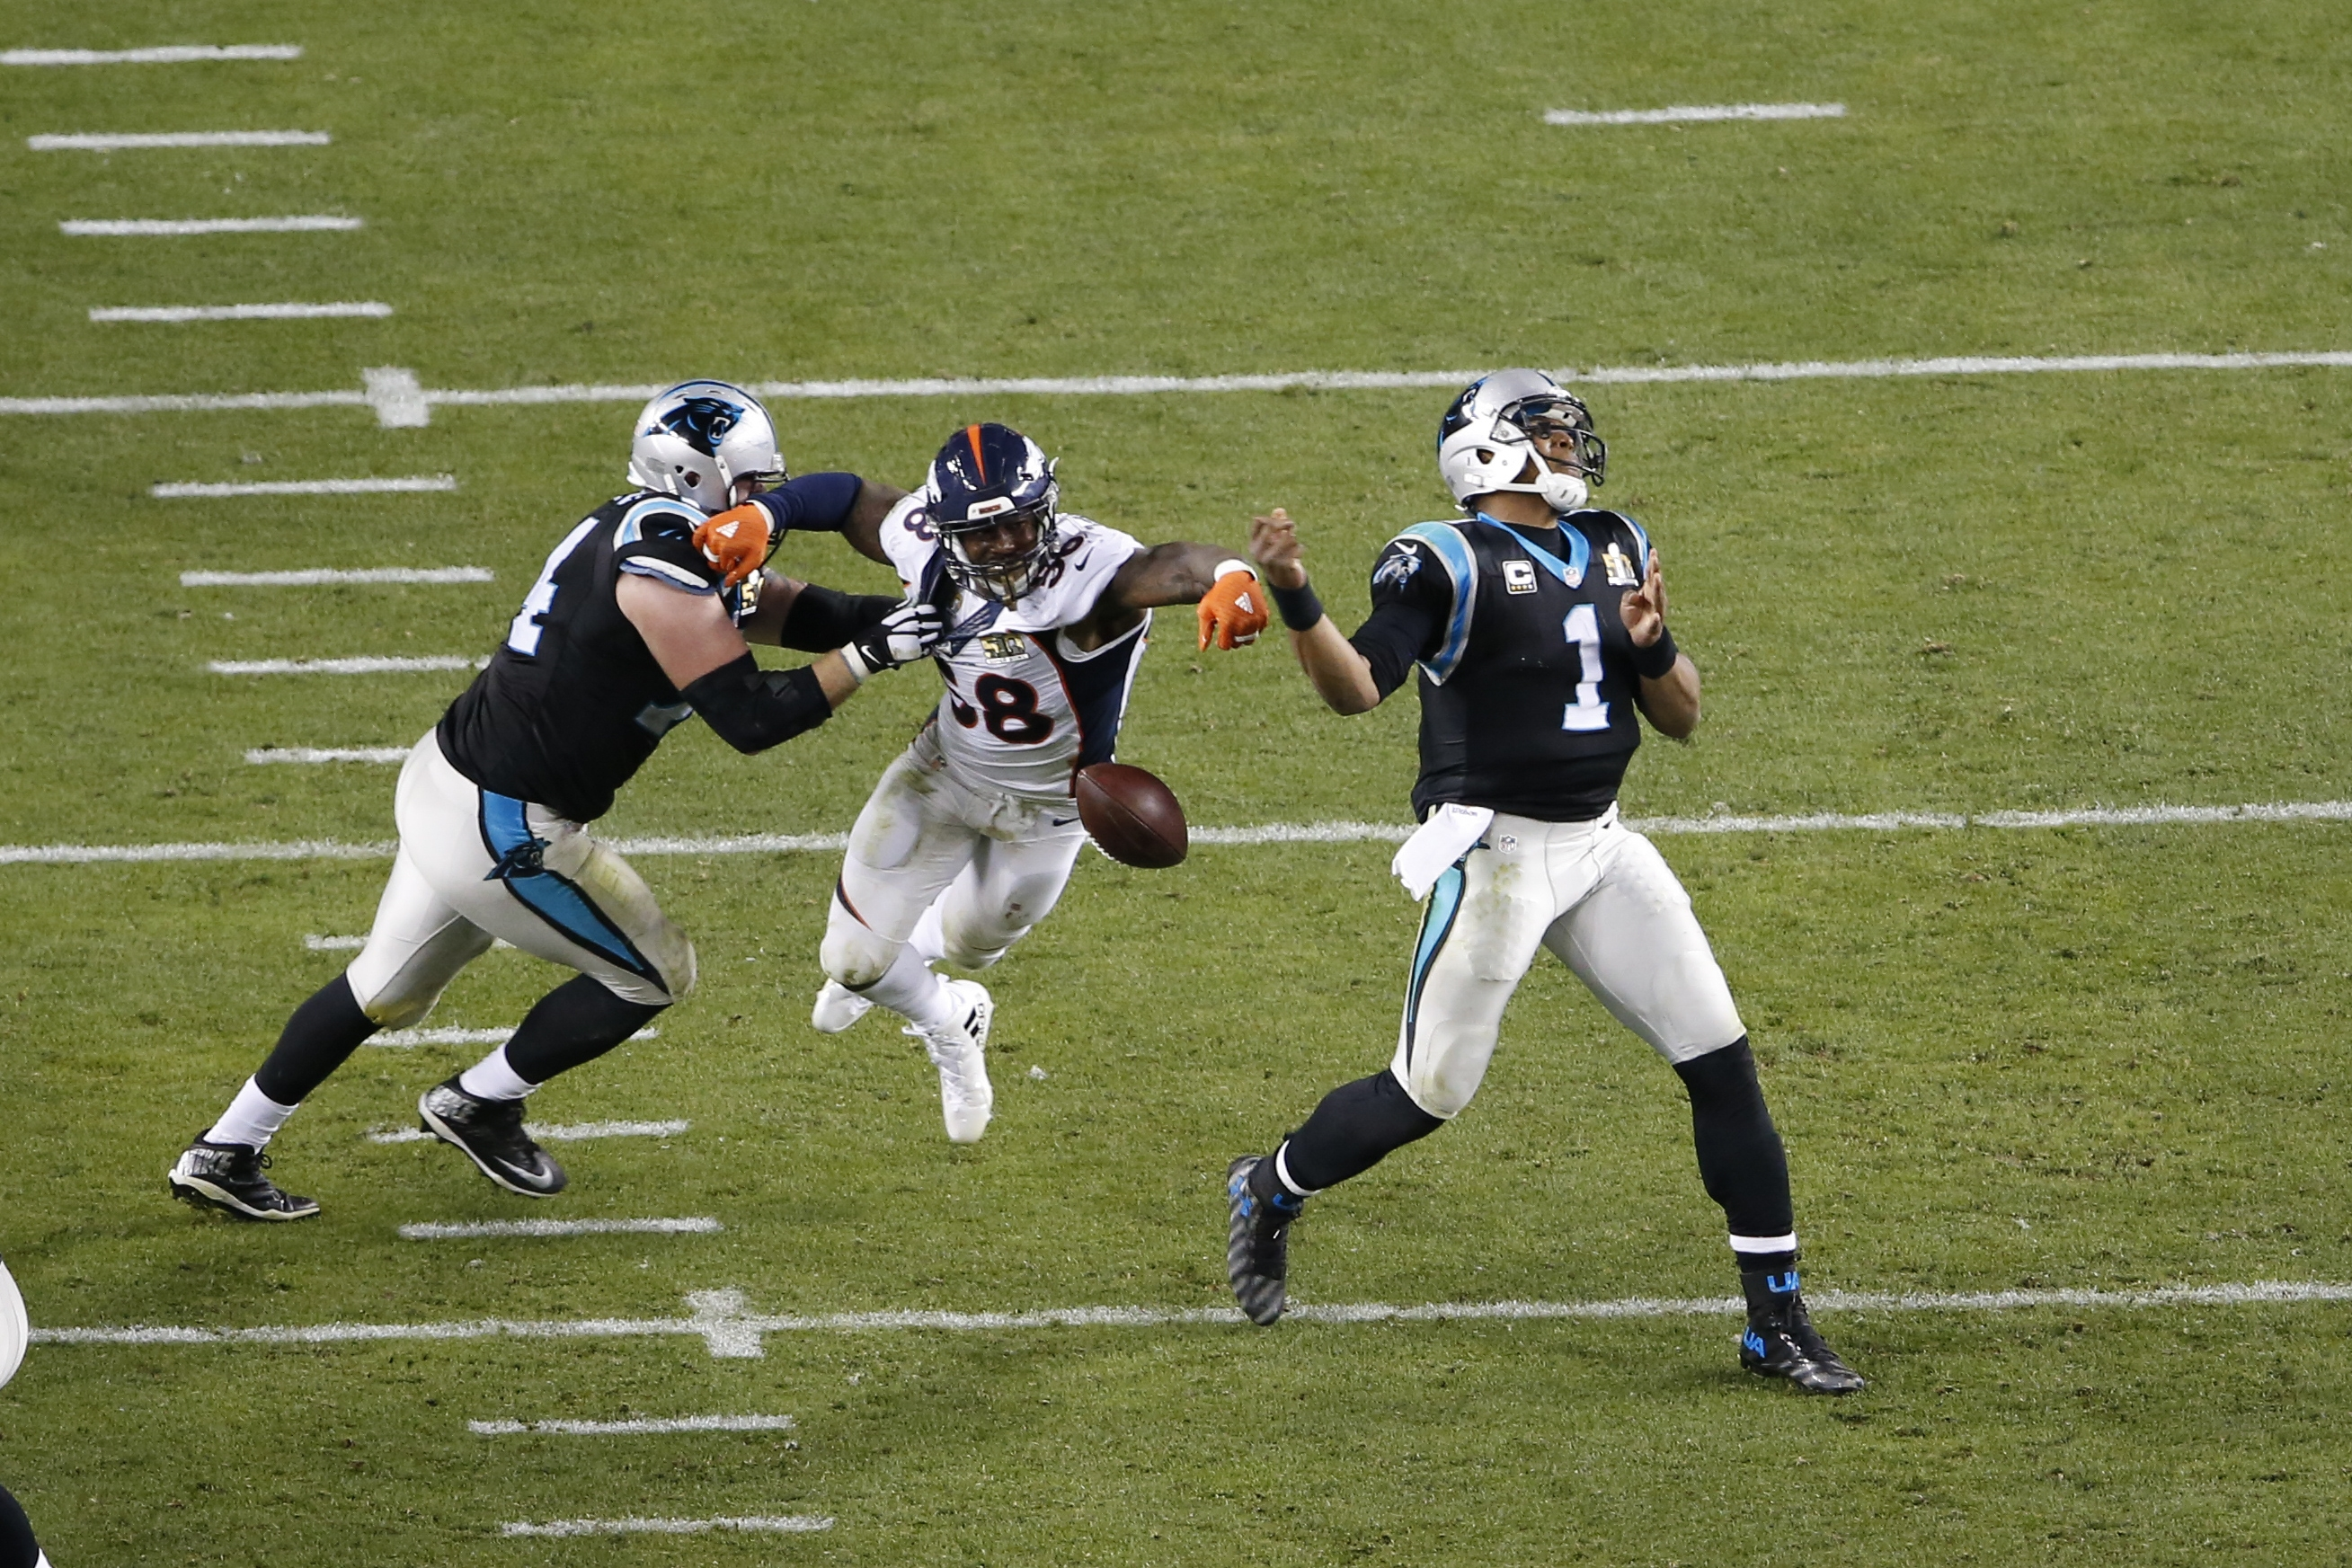 Denver Broncos linebacker Von Miller strips the ball from Carolina Panthers quarterback Cam Newton in the fourth quarter of Super Bowl 50.